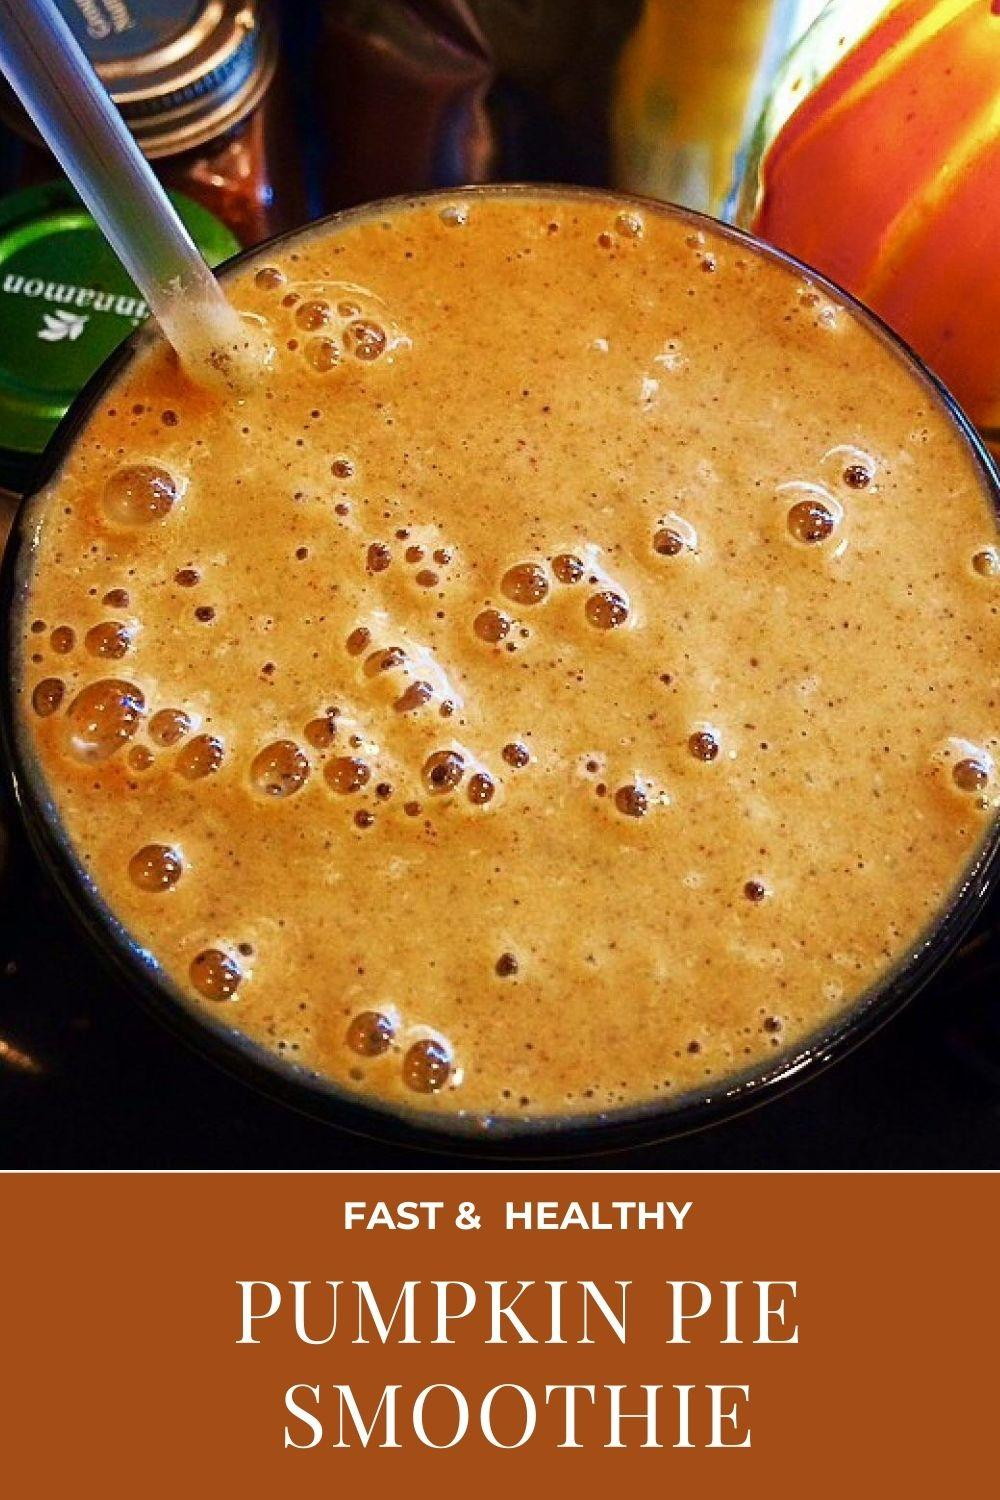 fast & healthy pumpkin pie smoothie graphic